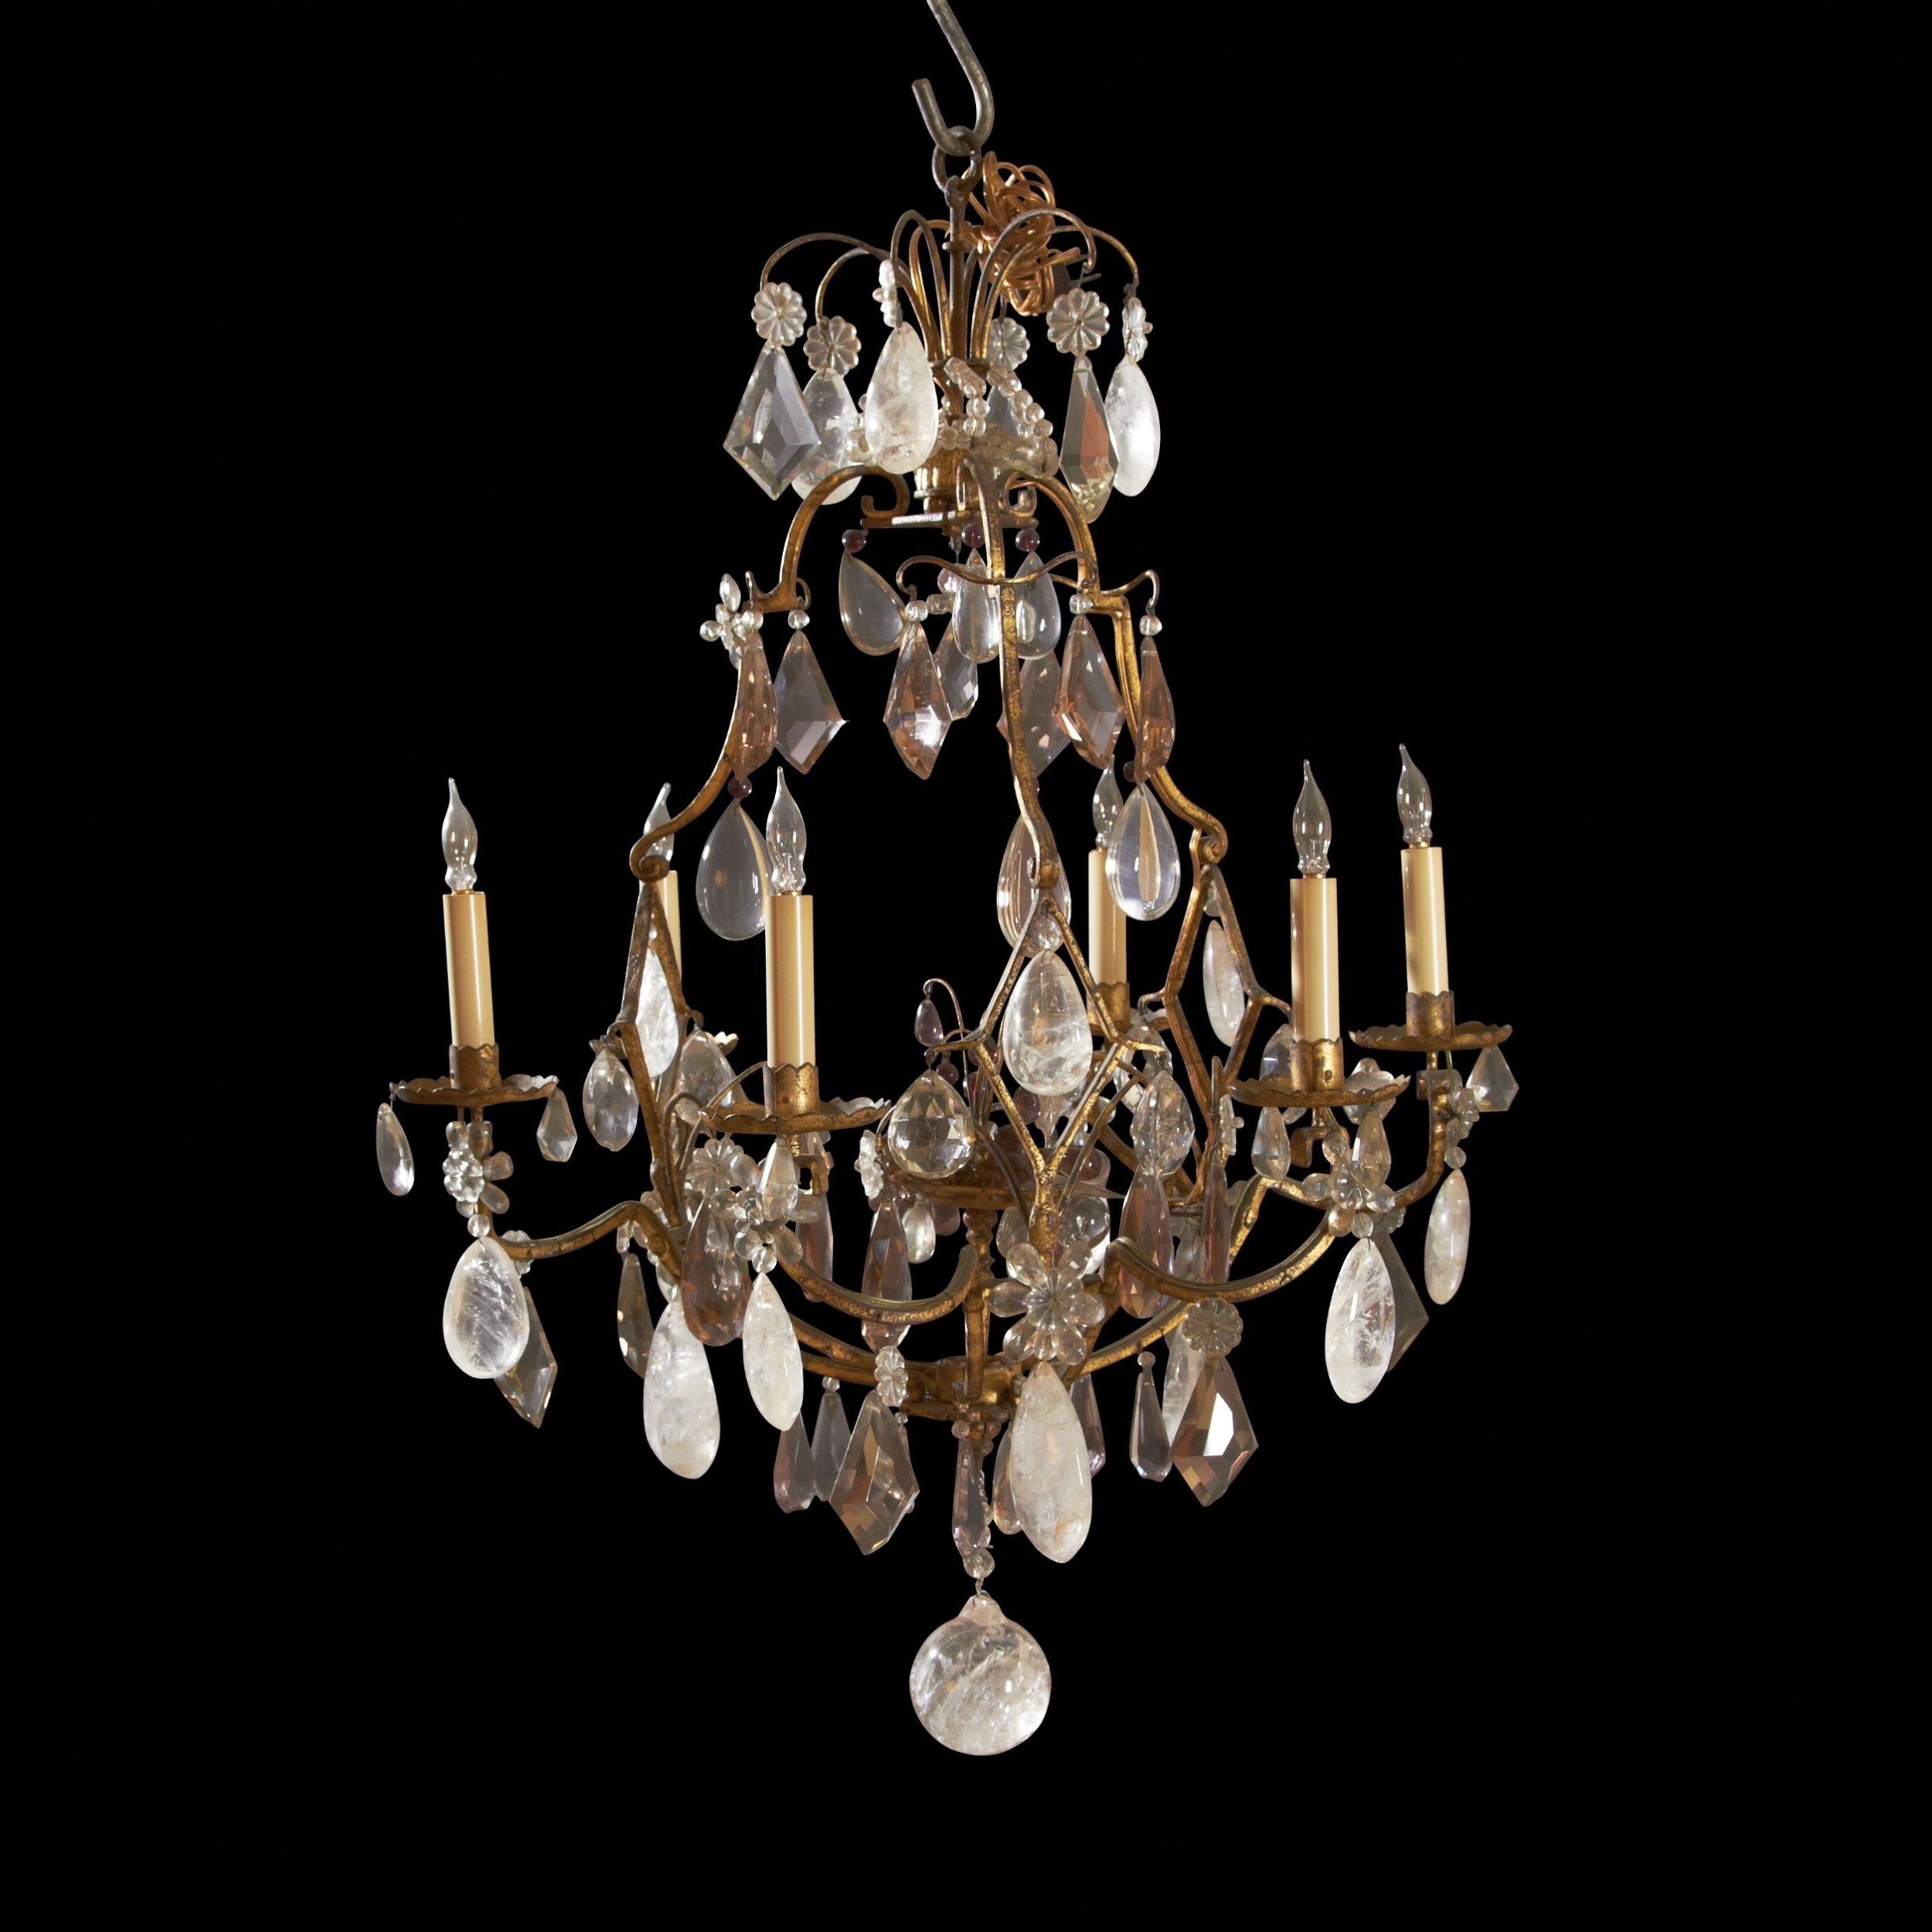 Widely Used Expensive Crystal Chandeliers Regarding Ideas: Mesmerizing Crystal Chandeliers With Beautiful Design For (View 13 of 15)